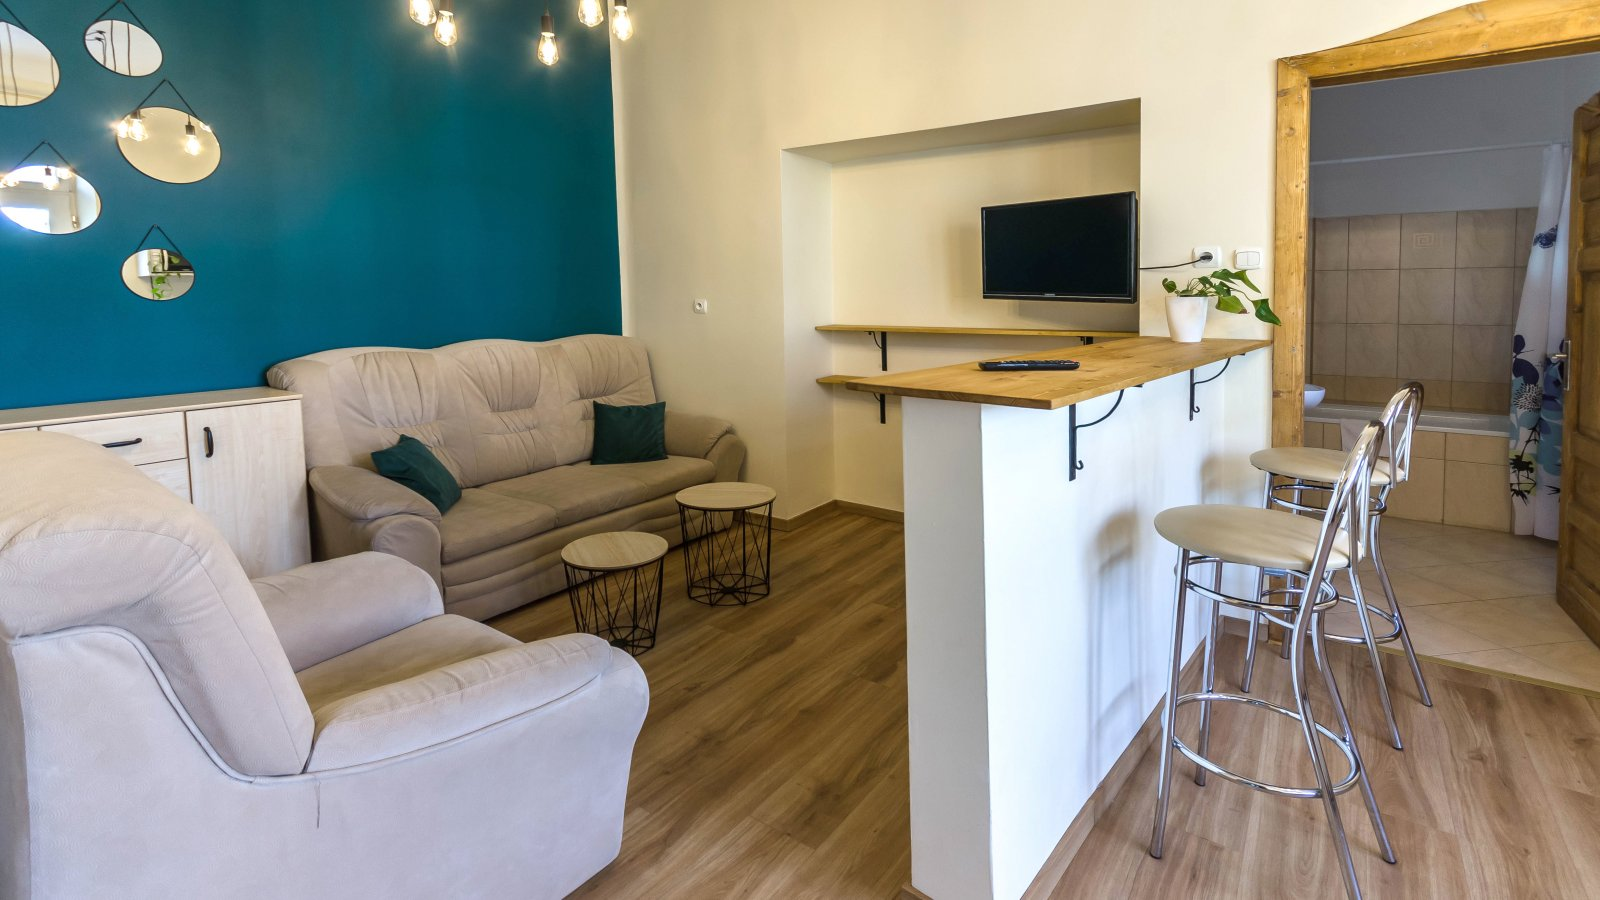 Apartament w Willi Żychoniówka